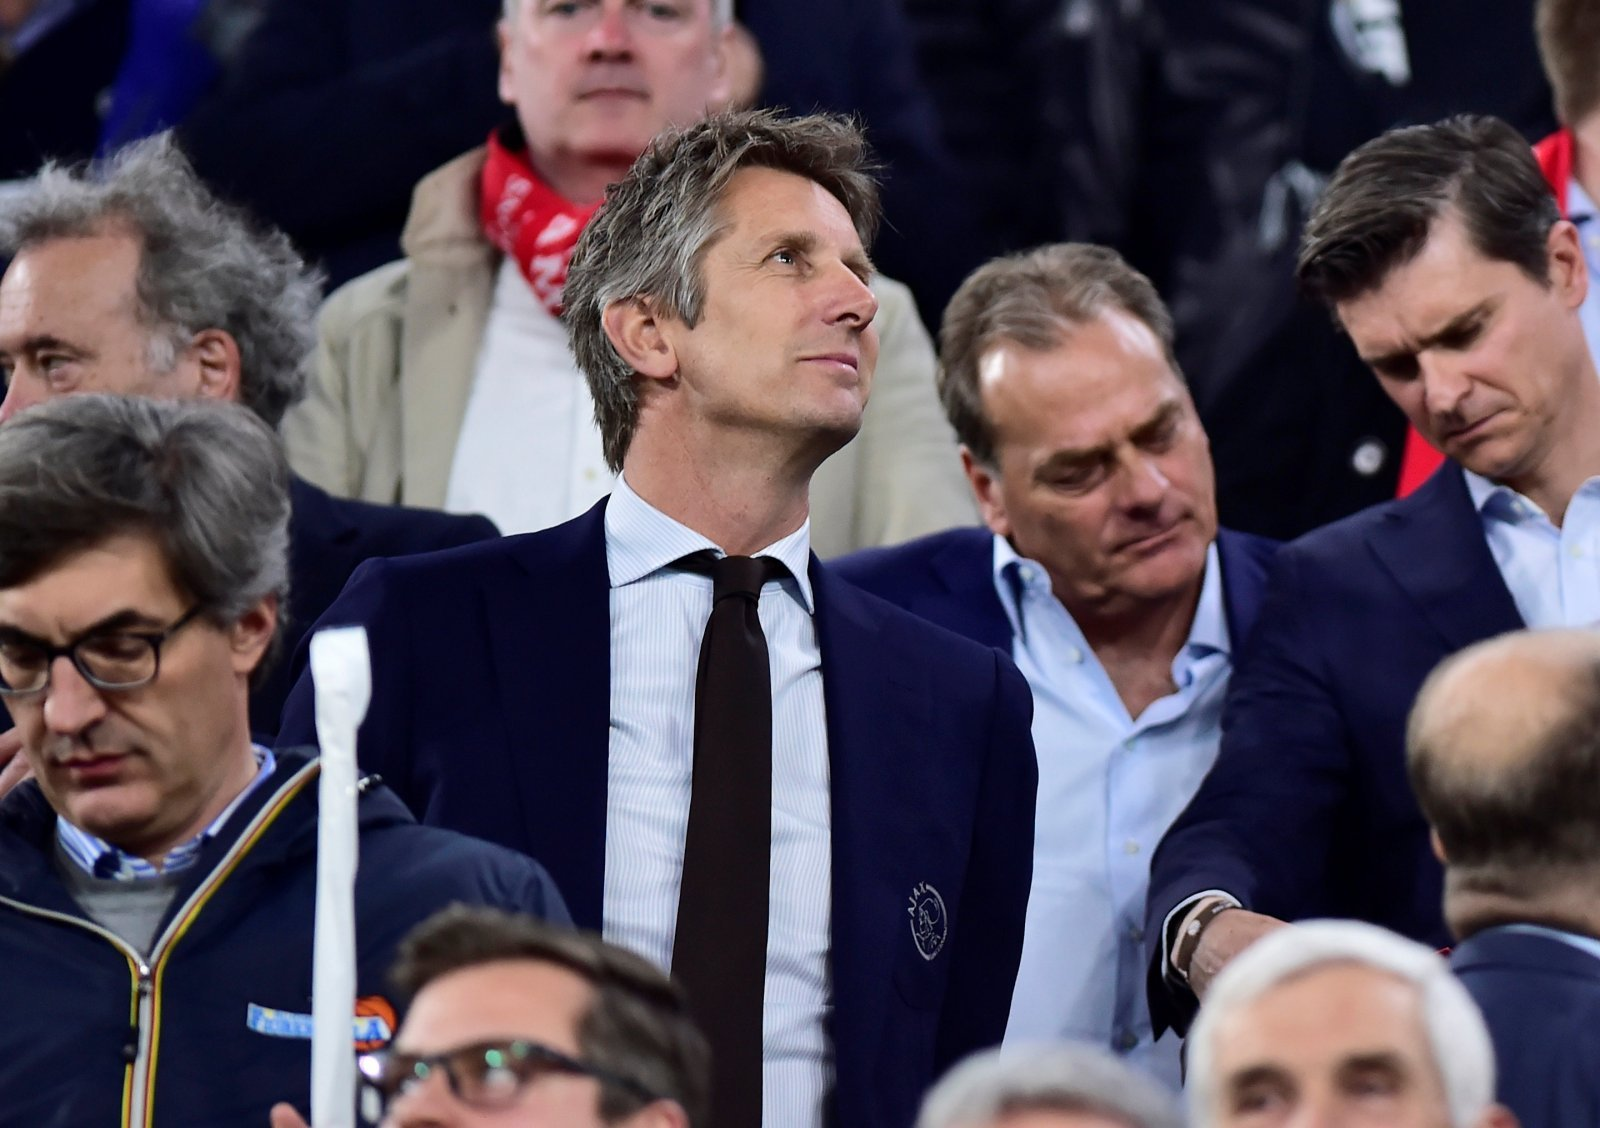 Manchester United: Edwin van der Sar open to making return to Old Trafford